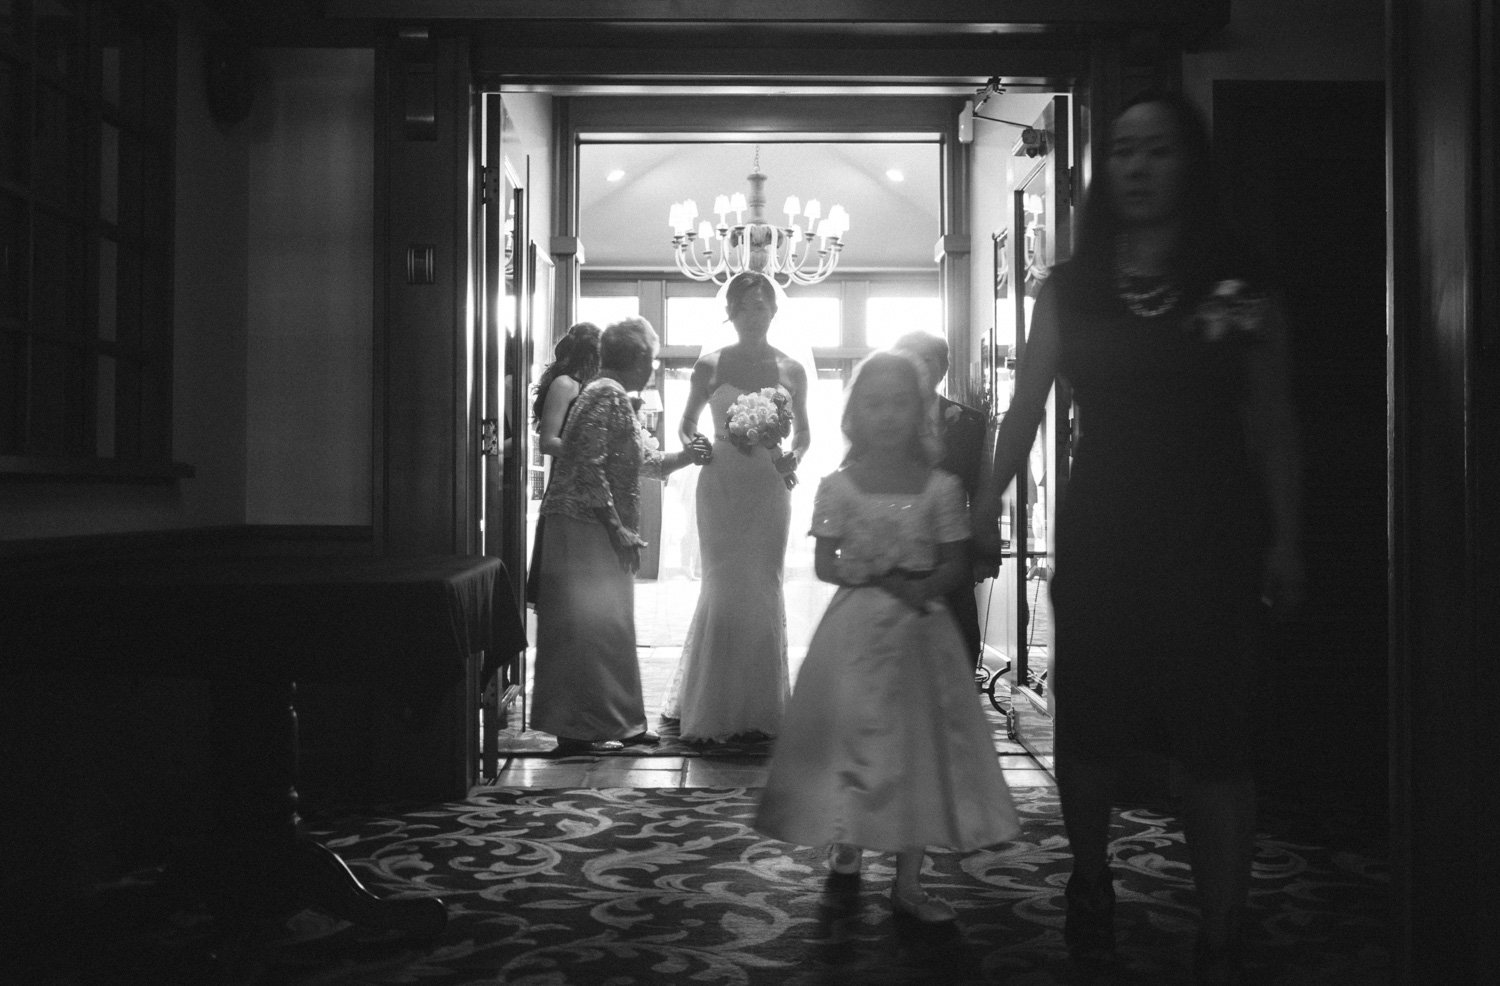 In some scenes I photograph, there can be a few things going on. I intentionally keep all these elements in the photograph to give a broader view of what happened on a particular wedding day. I see the mother of the bride holding the bride's hand while the flower girl is led by her mother (?).